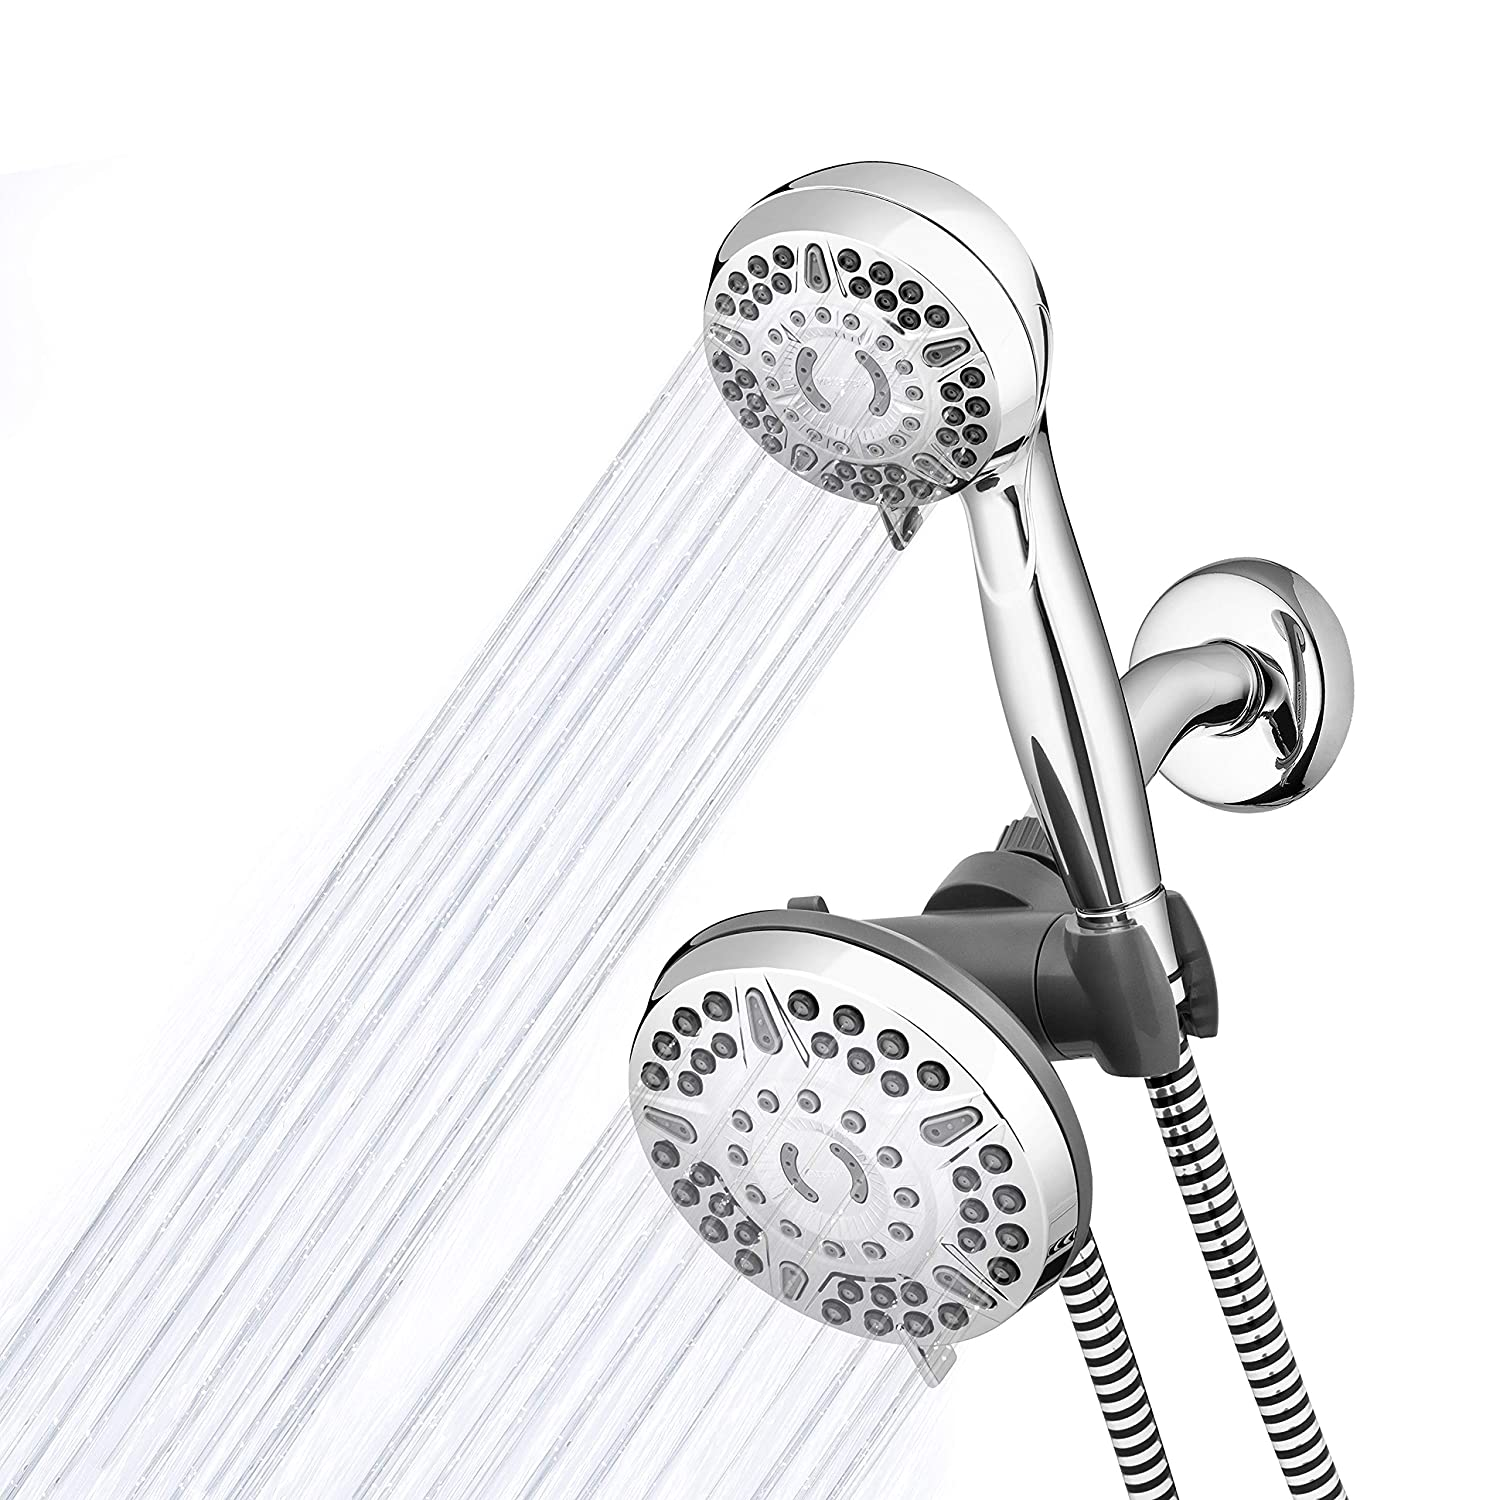 1. WaterPik High-Pressure Shower Head XET-633-643